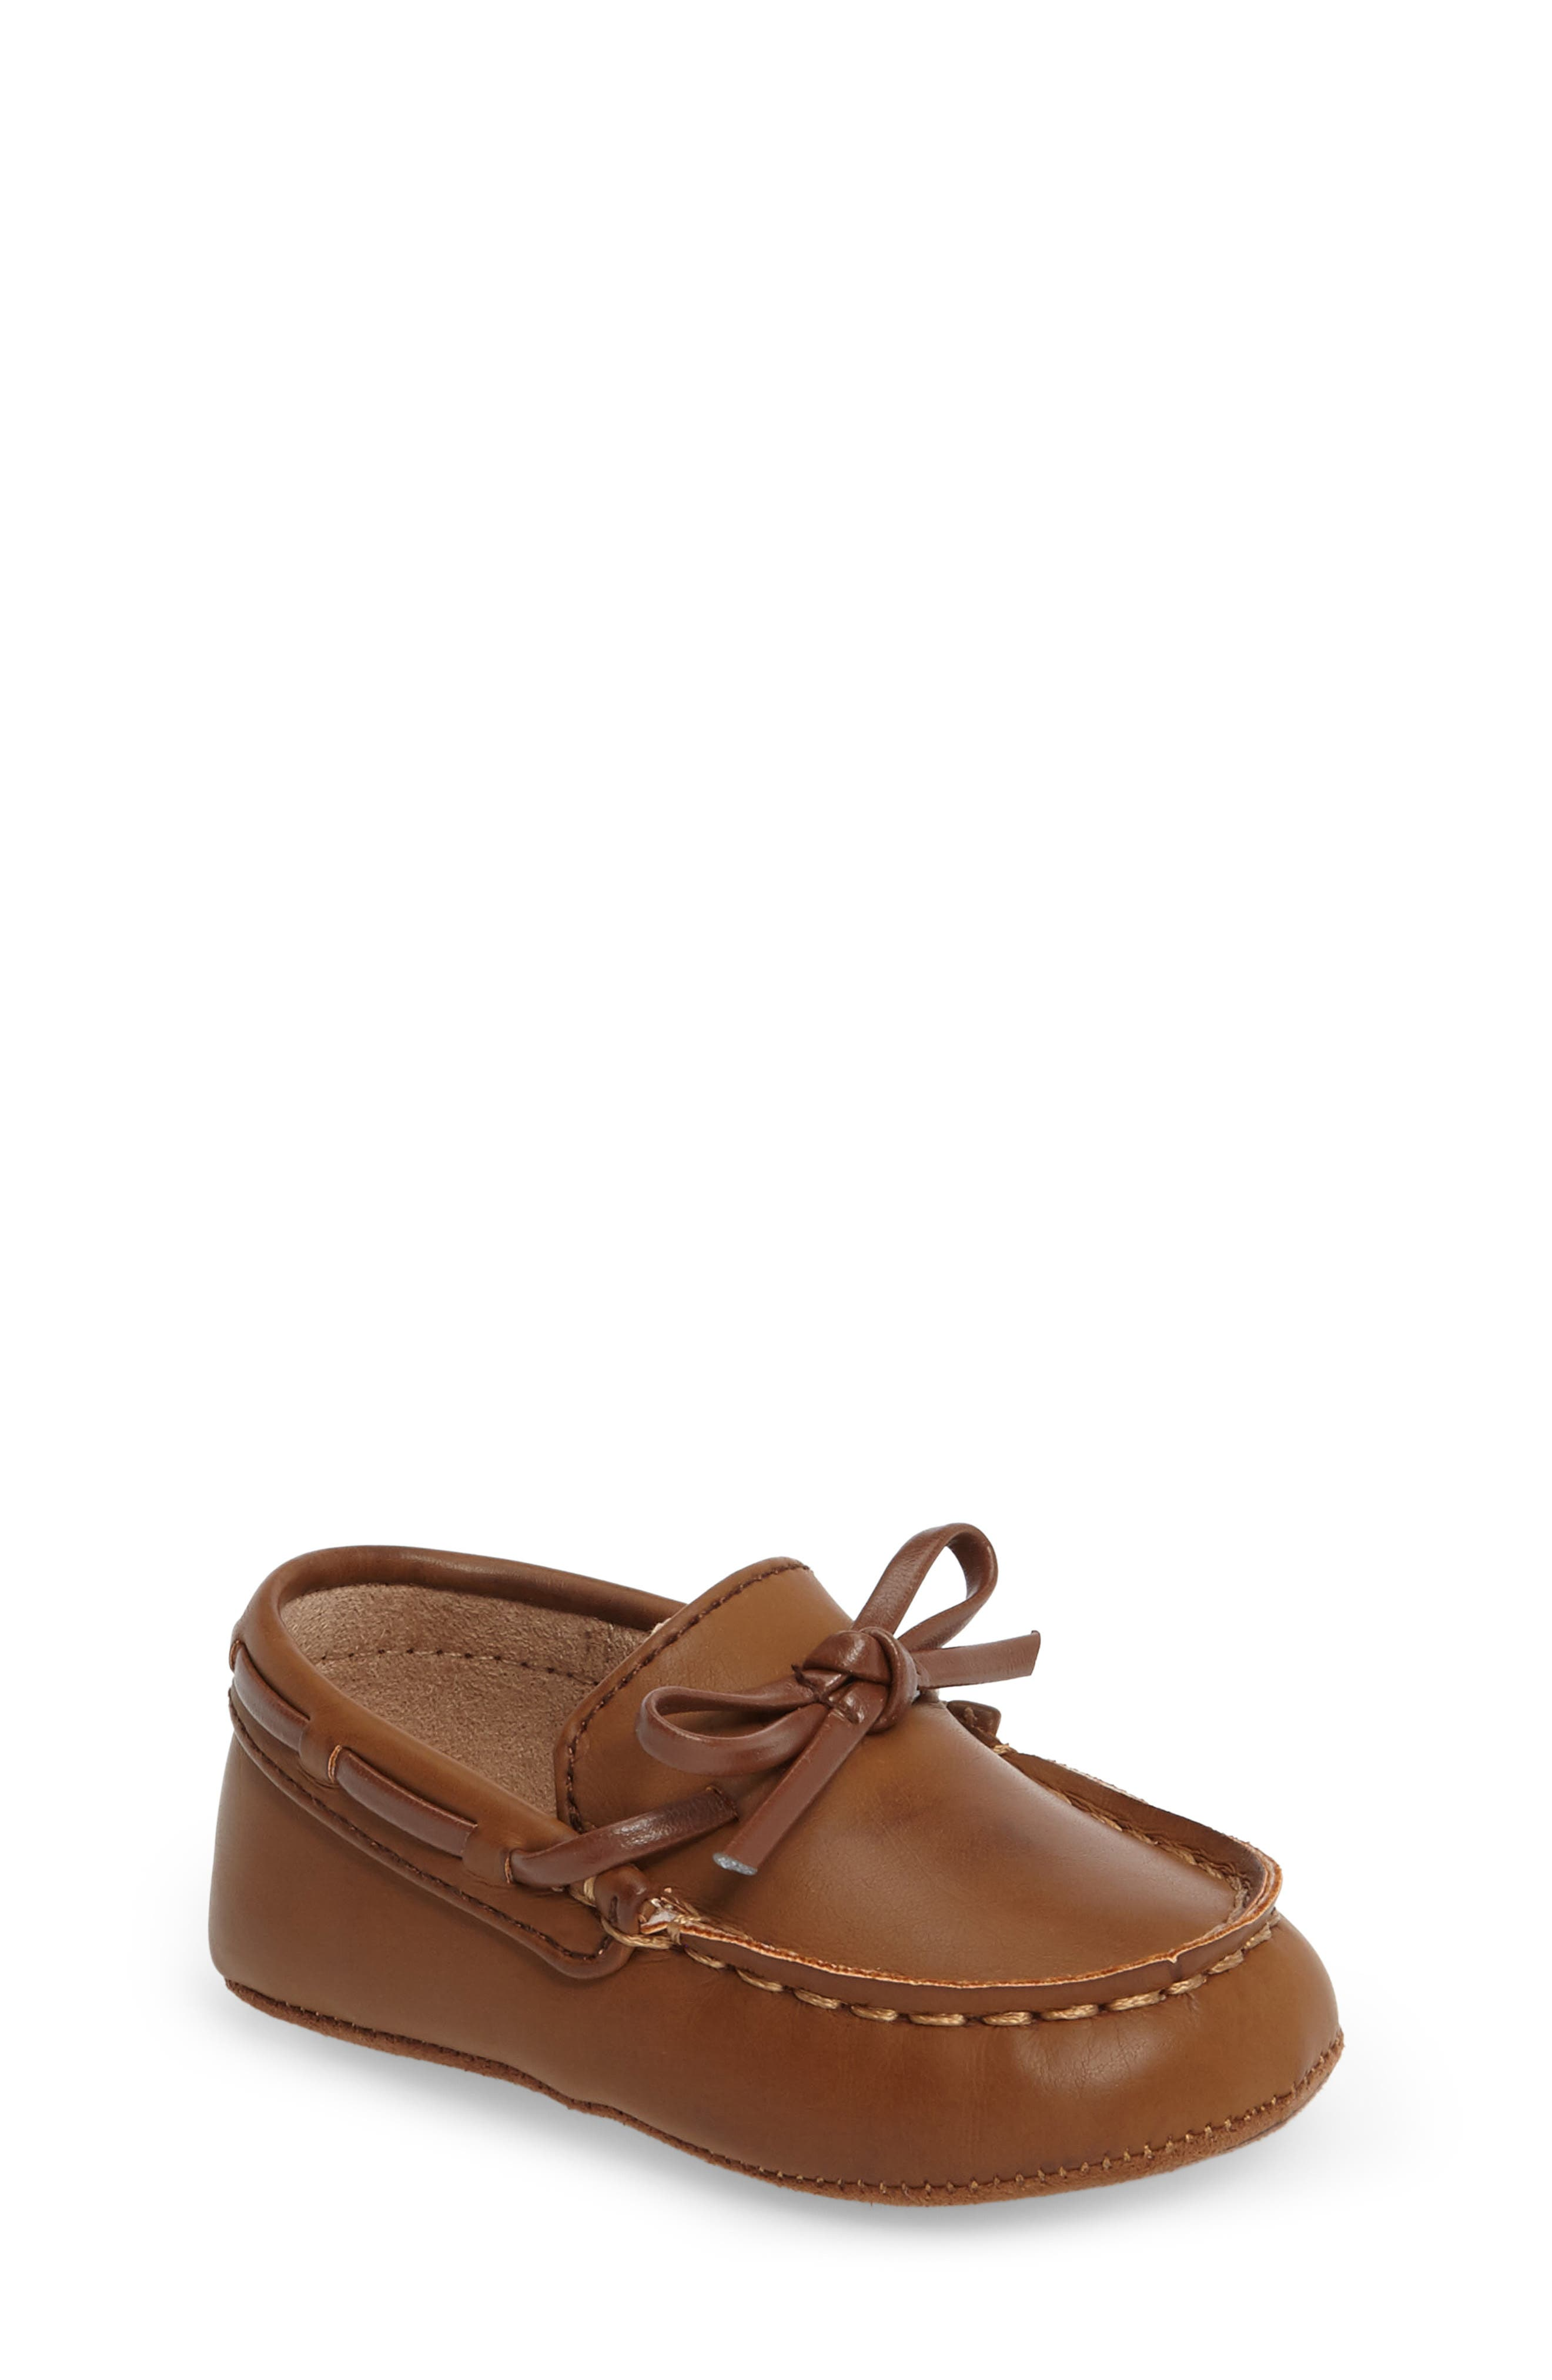 KENNETH COLE NEW YORK, Baby Boat Shoe, Main thumbnail 1, color, CARAMEL